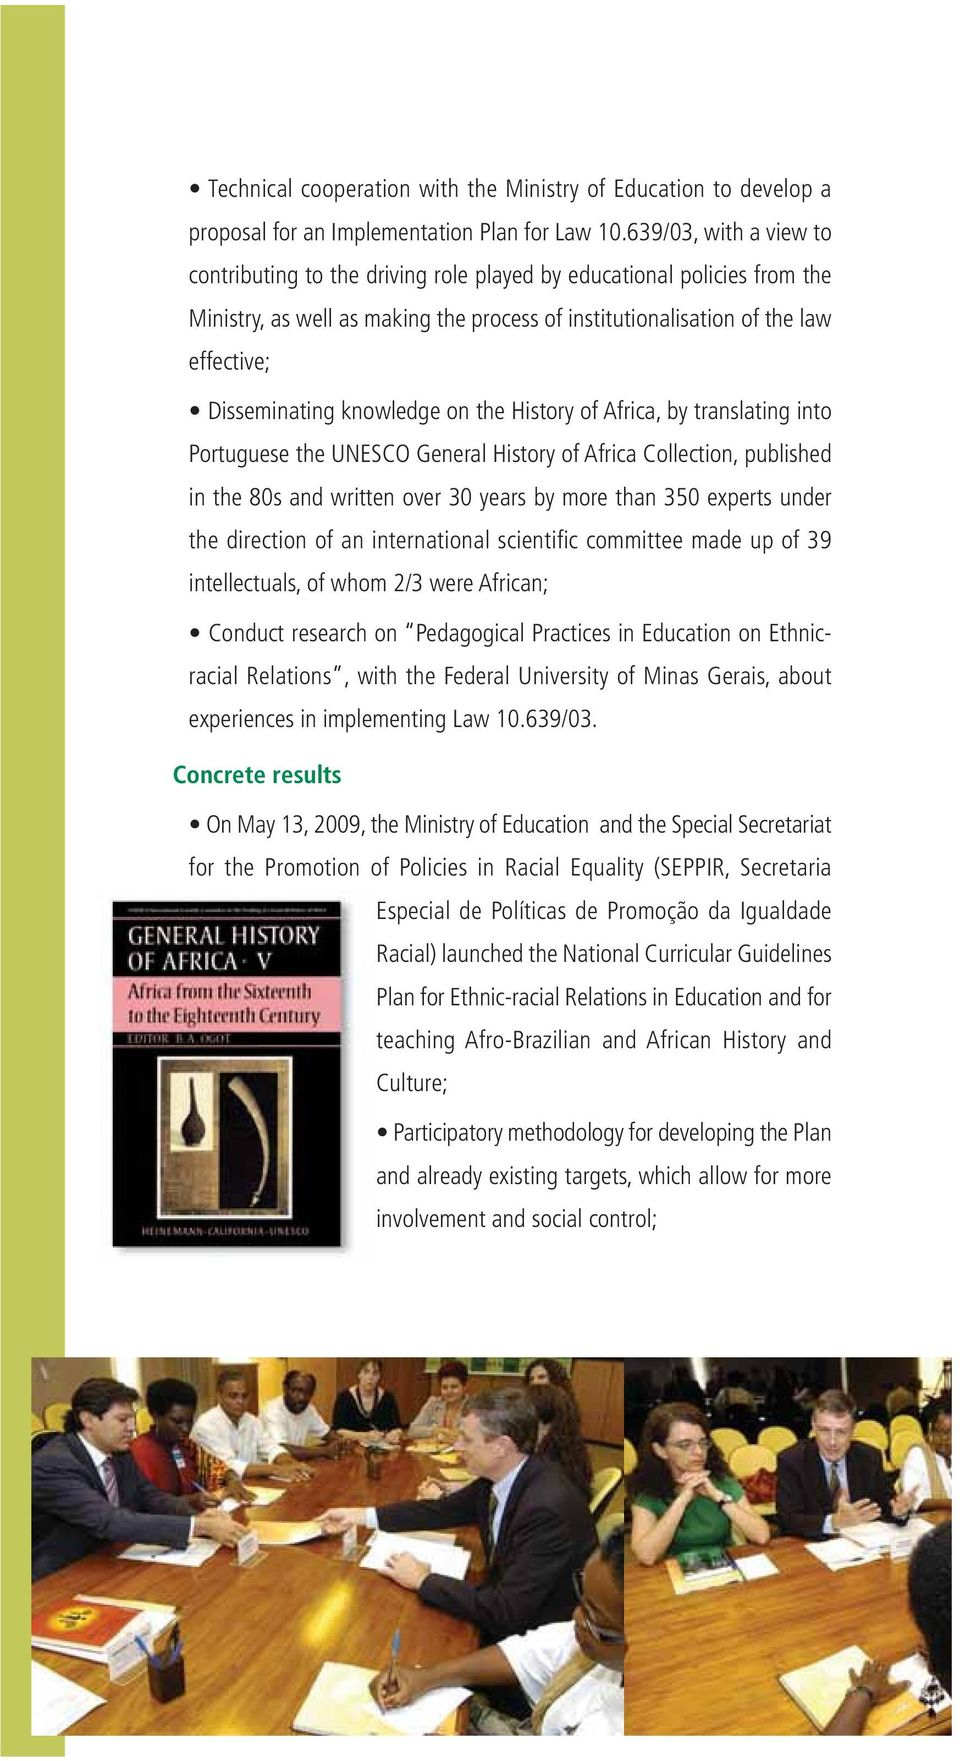 knowledge on the History of Africa, by translating into Portuguese the UNESCO General History of Africa Collection, published in the 80s and written over 30 years by more than 350 experts under the